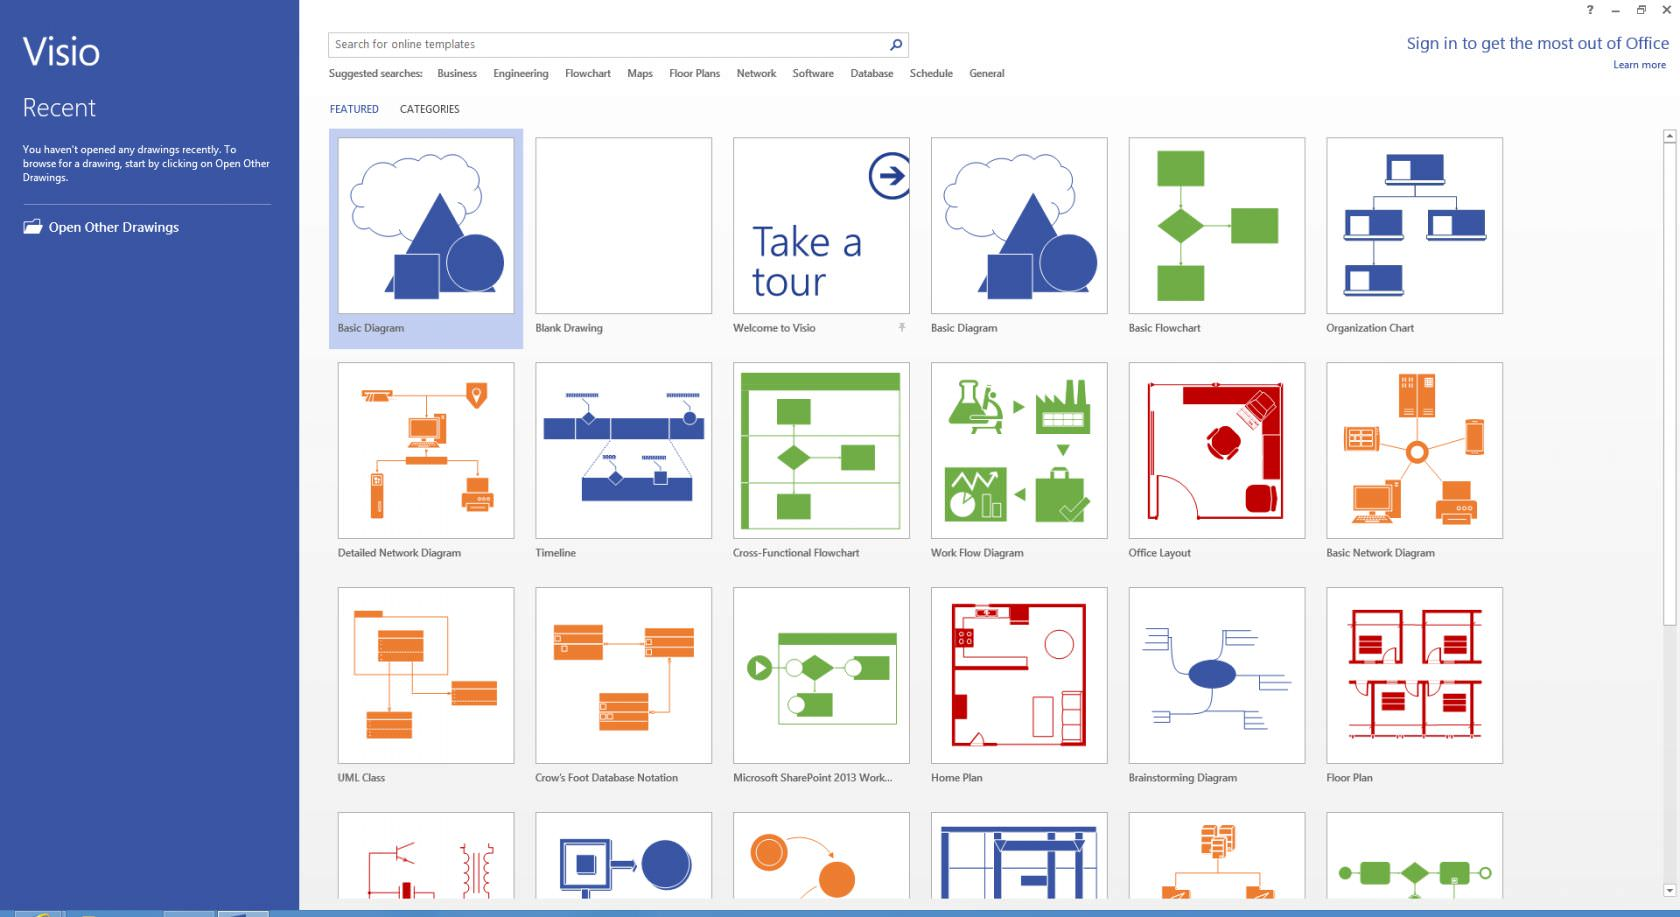 Microsoft visio professional 2016 official website opium pulses microsoft visio professional 2016 official website opium pulses cheap prices great service gumiabroncs Images